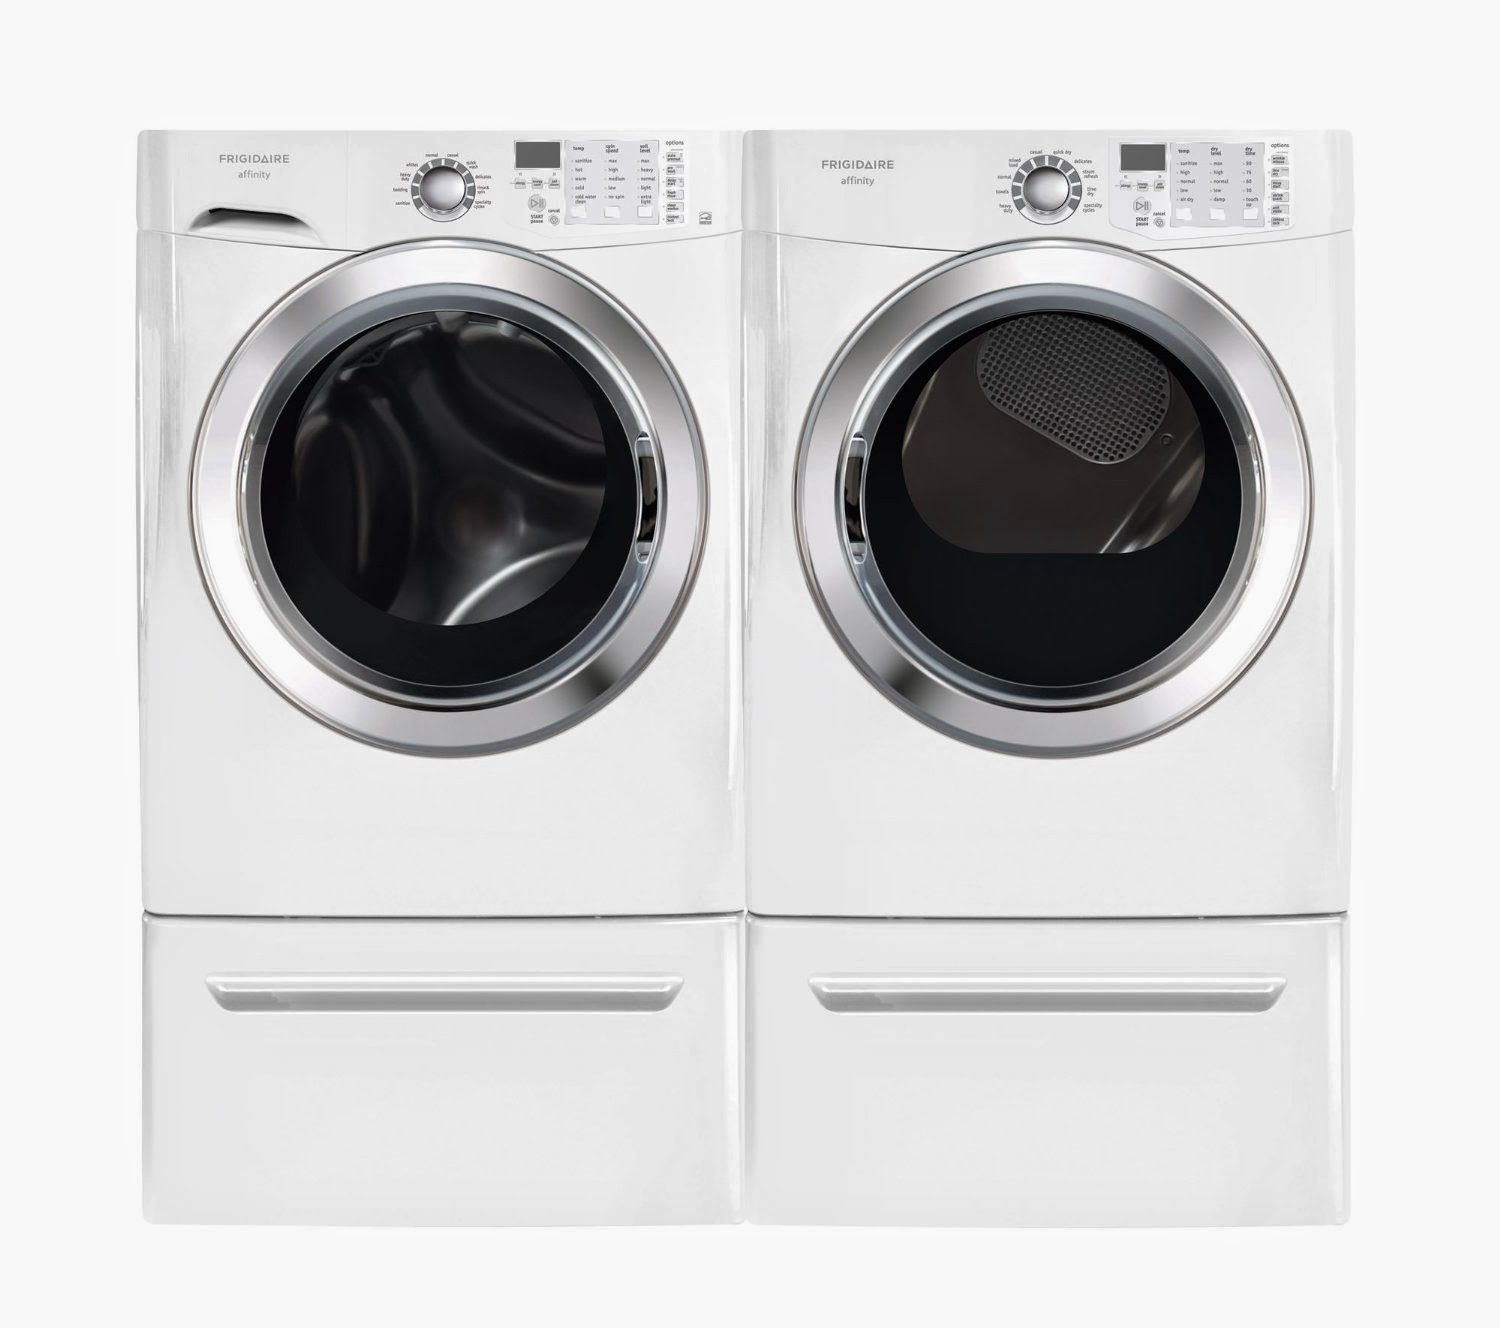 frigidaire affinity front load washer and dryer reviews